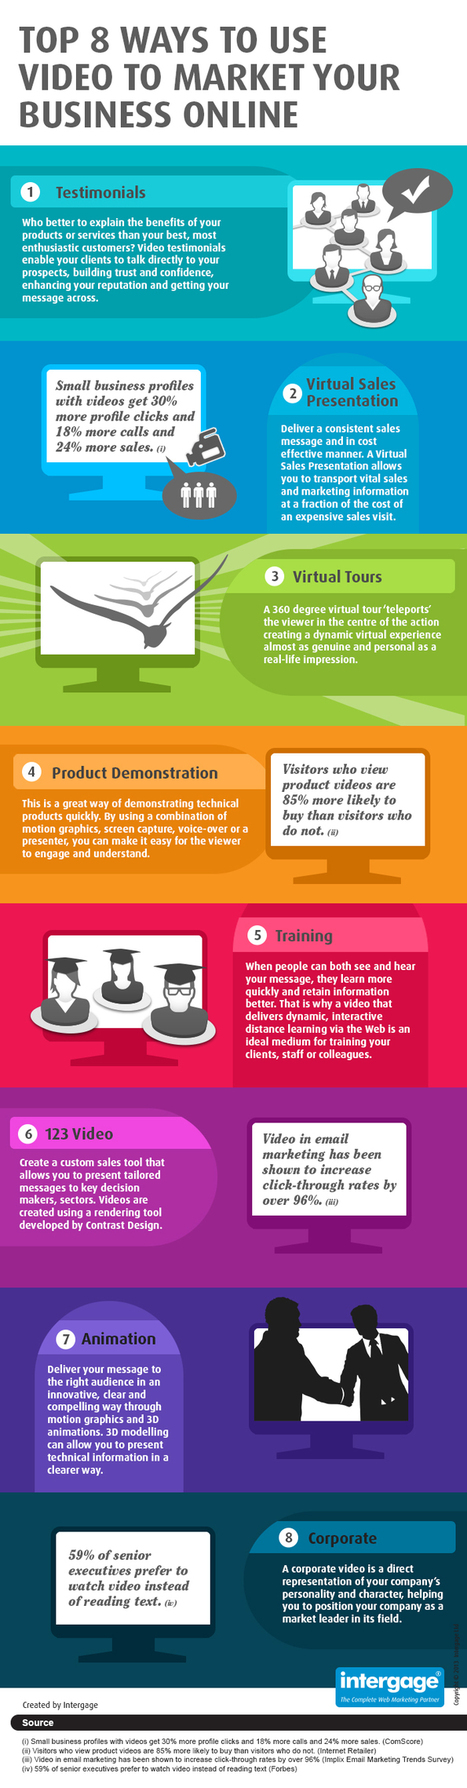 Top 8 Ways To Use Video For Business INFOGRAPHIC | Jobs, careers and companies | Scoop.it